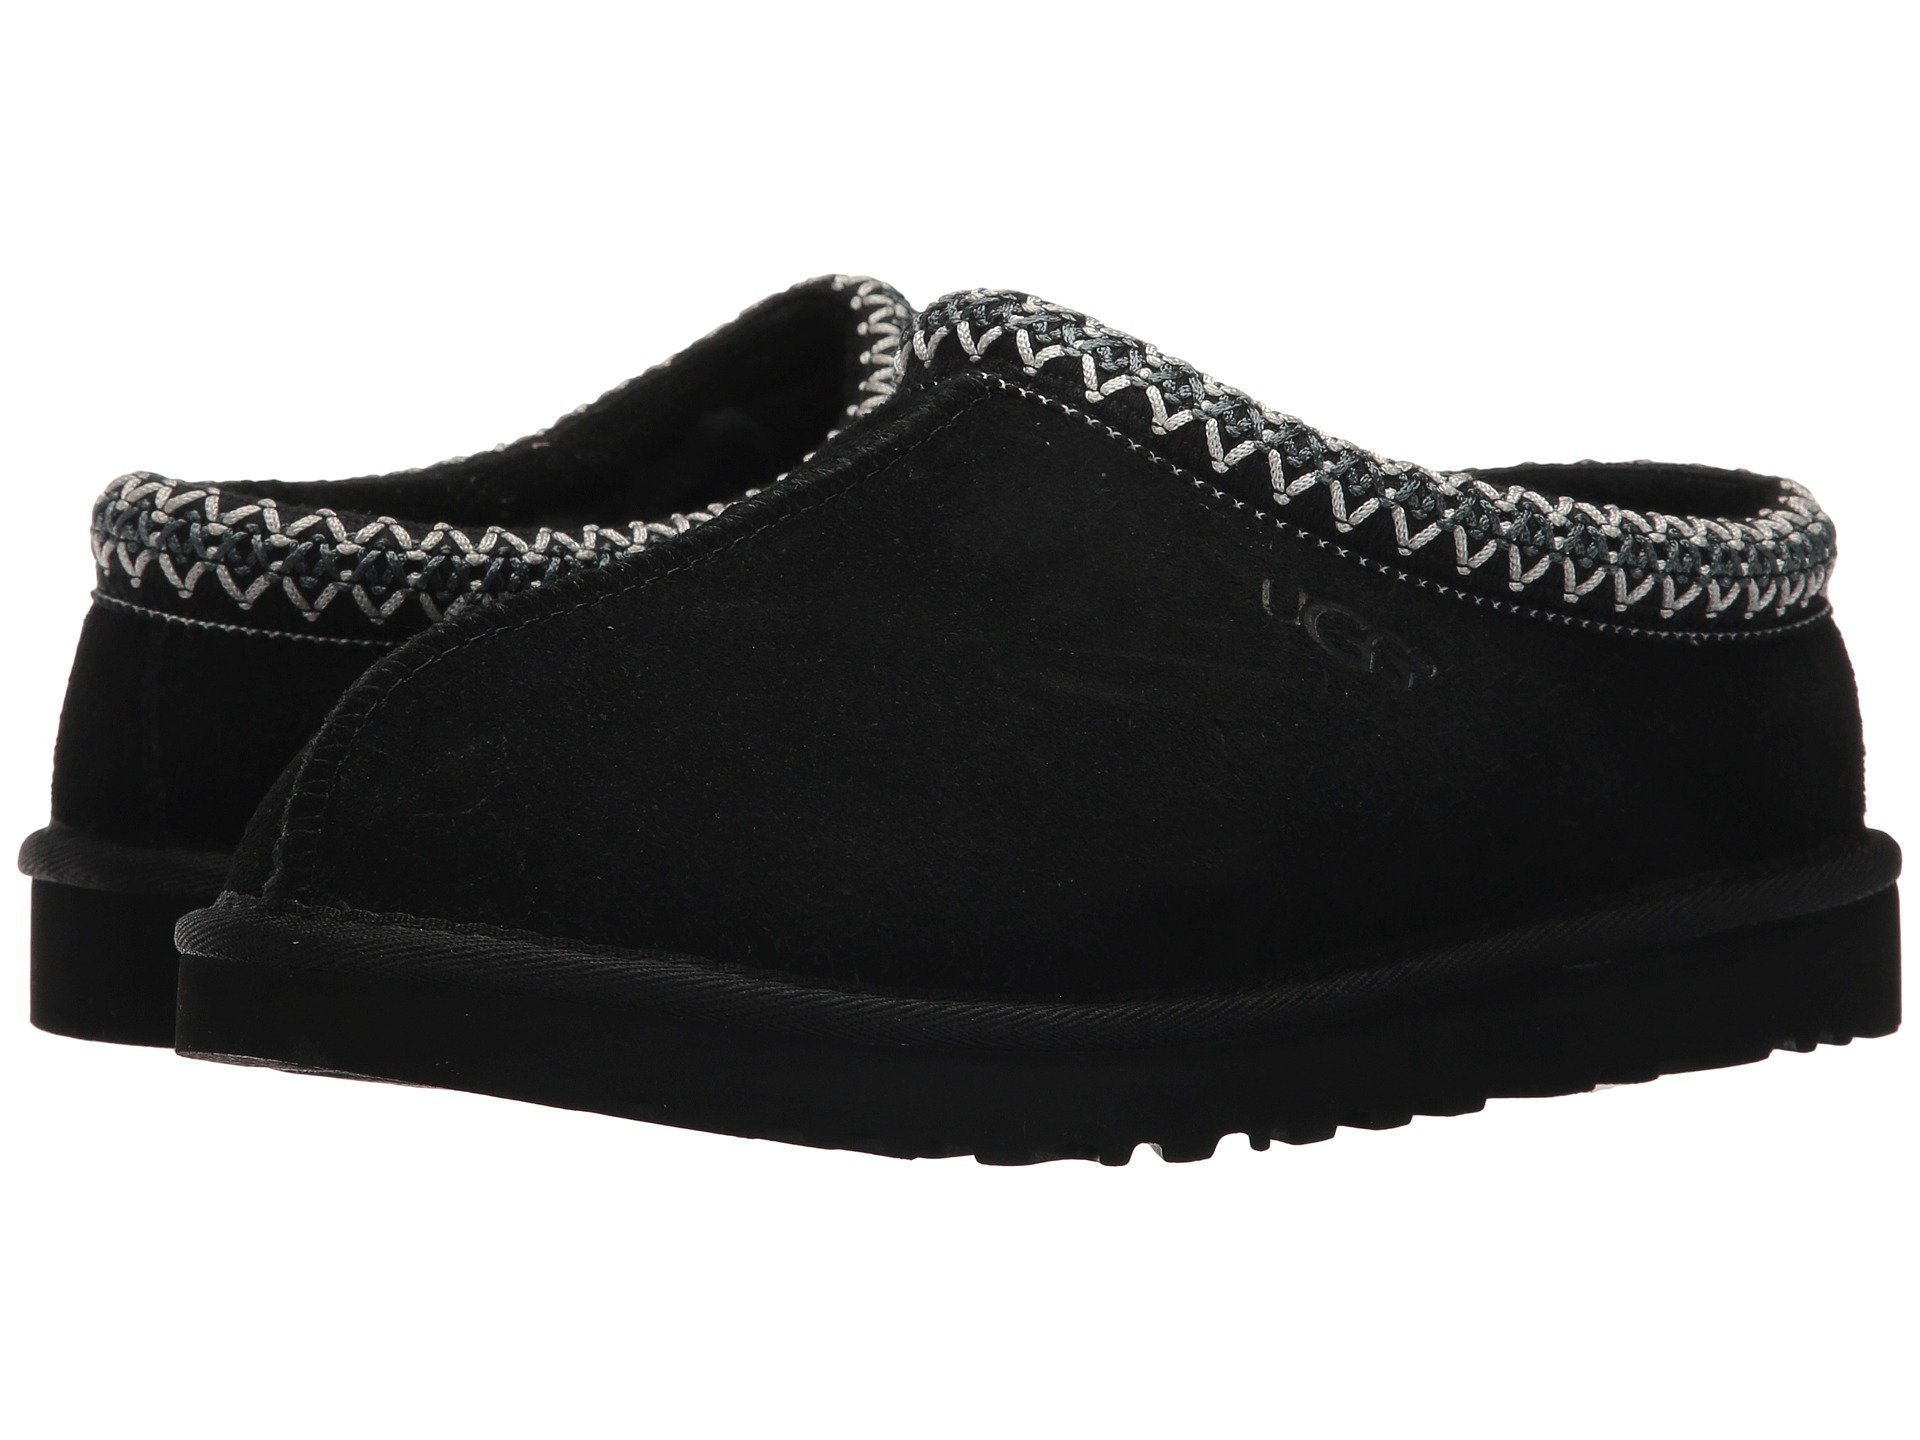 7106fbfe1fc Men's UGG Slippers + FREE SHIPPING | Shoes | Zappos.com